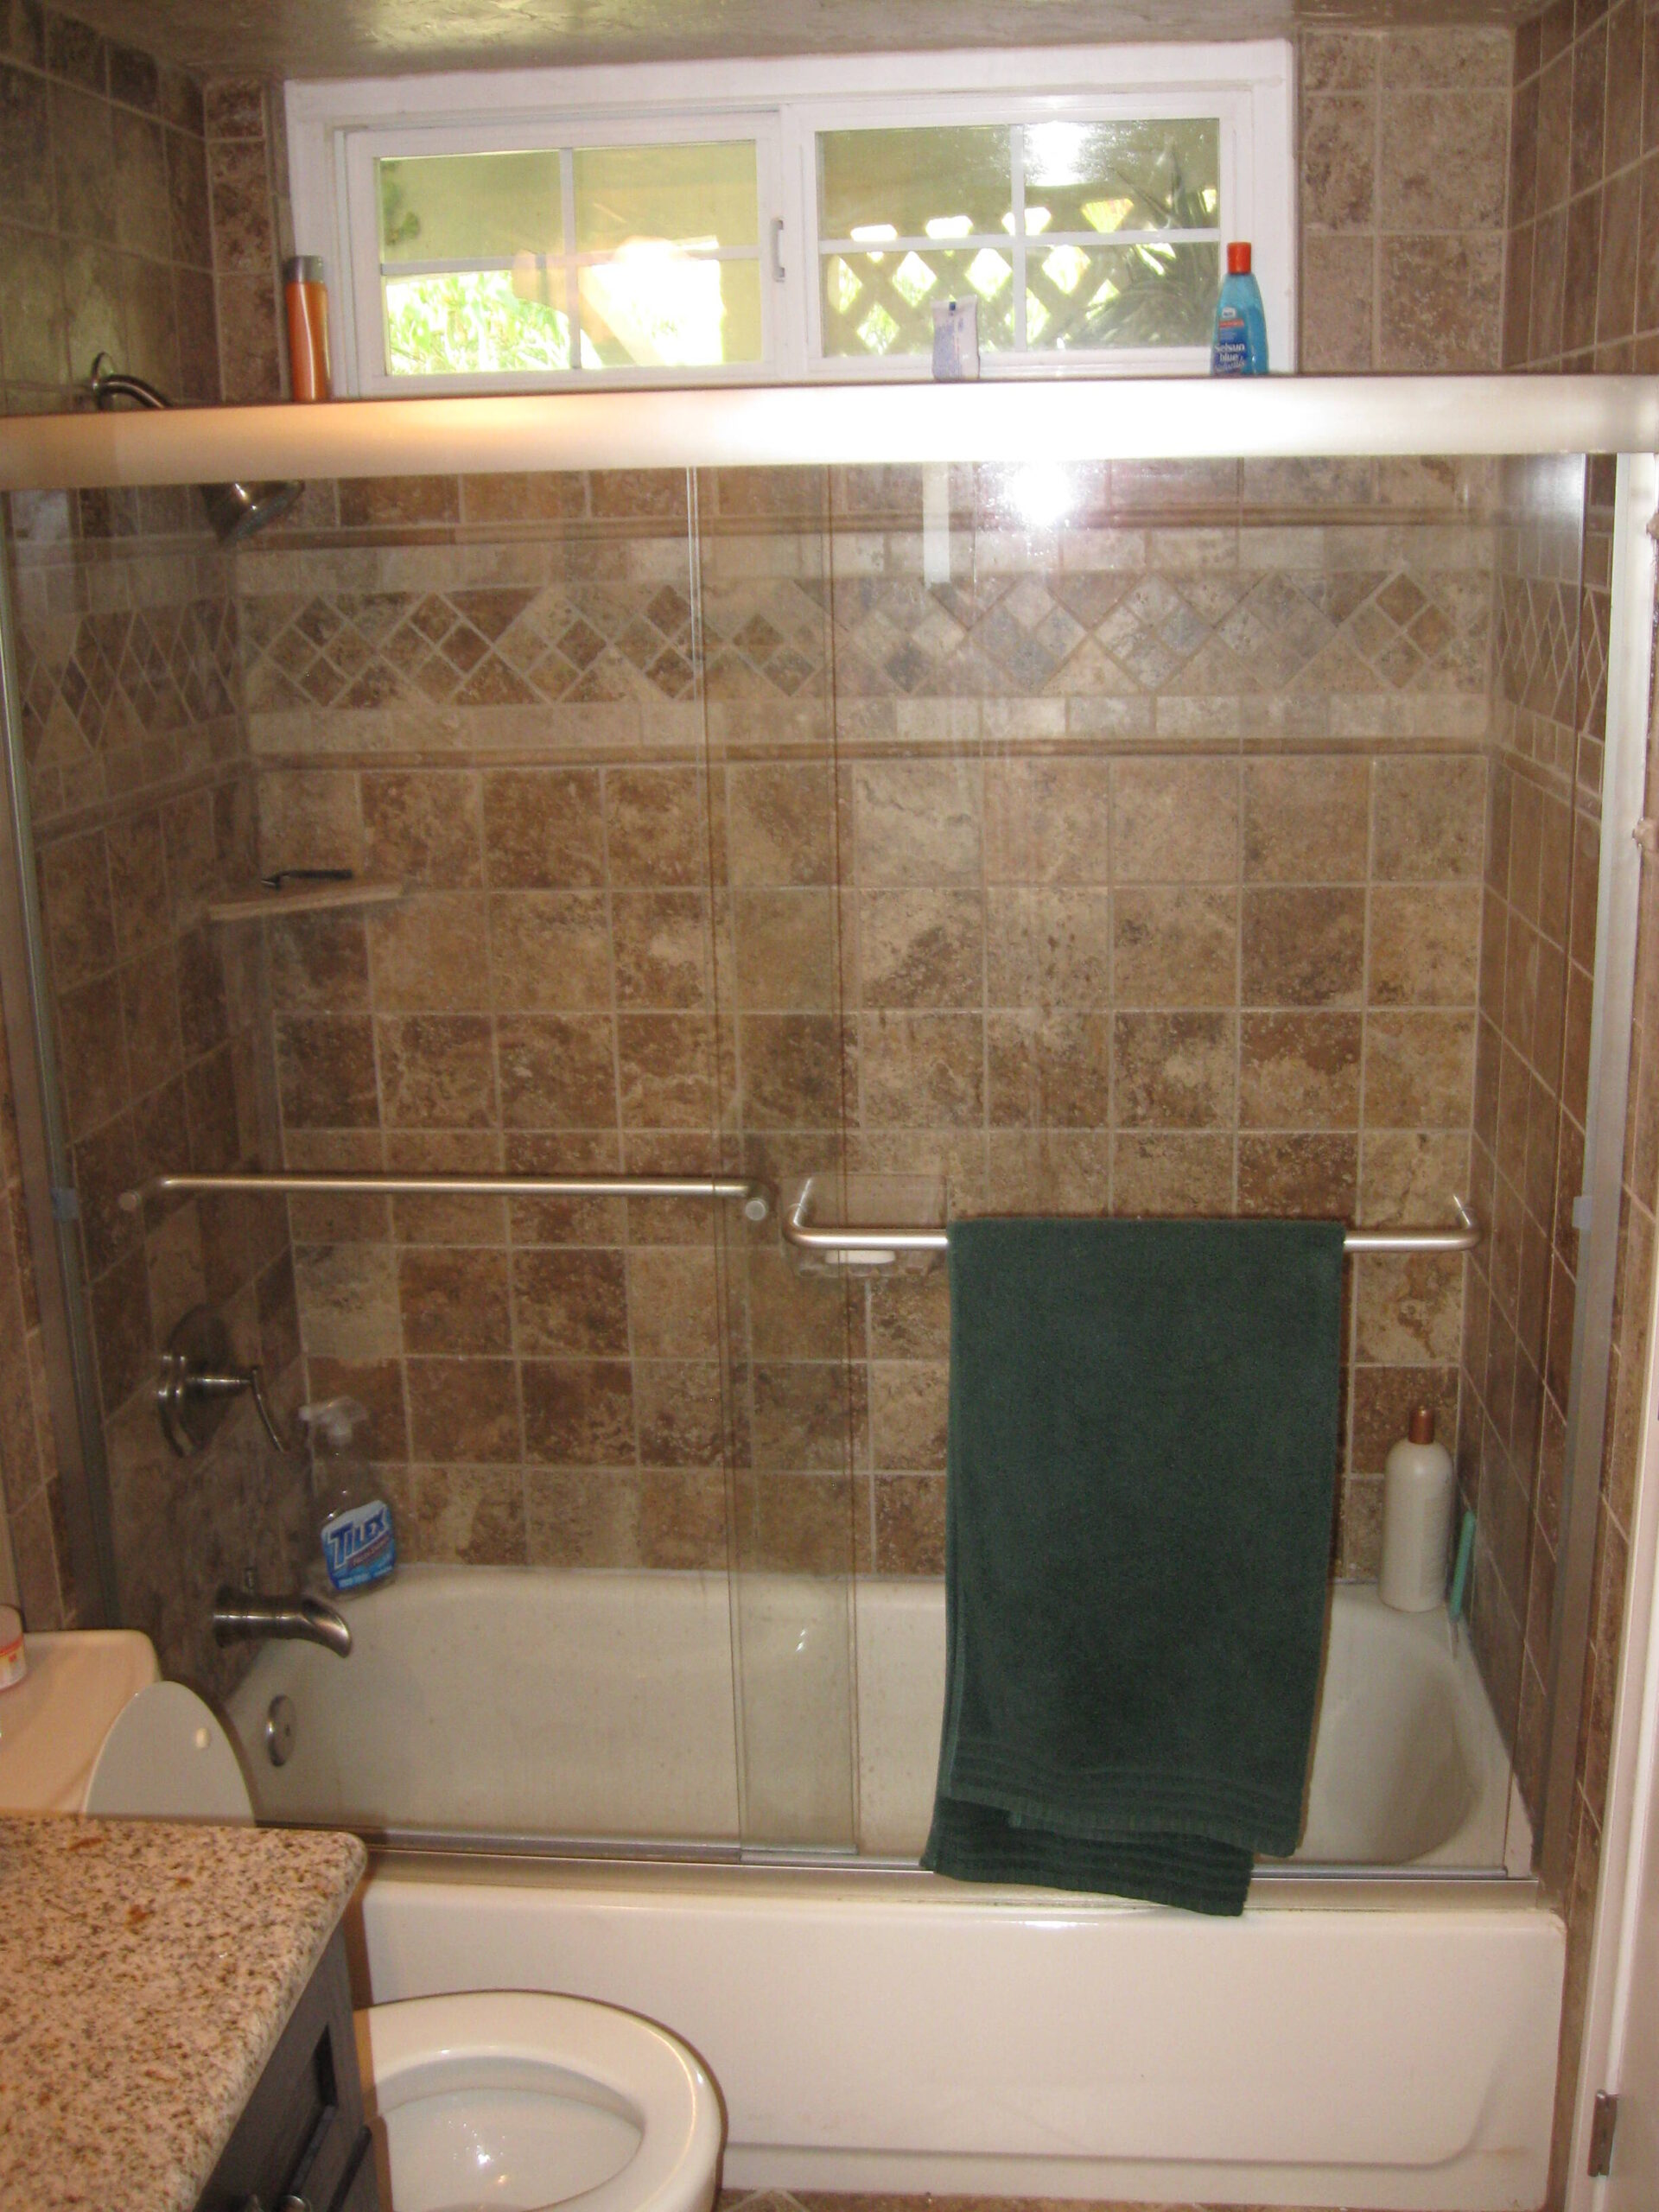 Bathtub Installation Bathtub Plumbing Repair  Tub Door Install